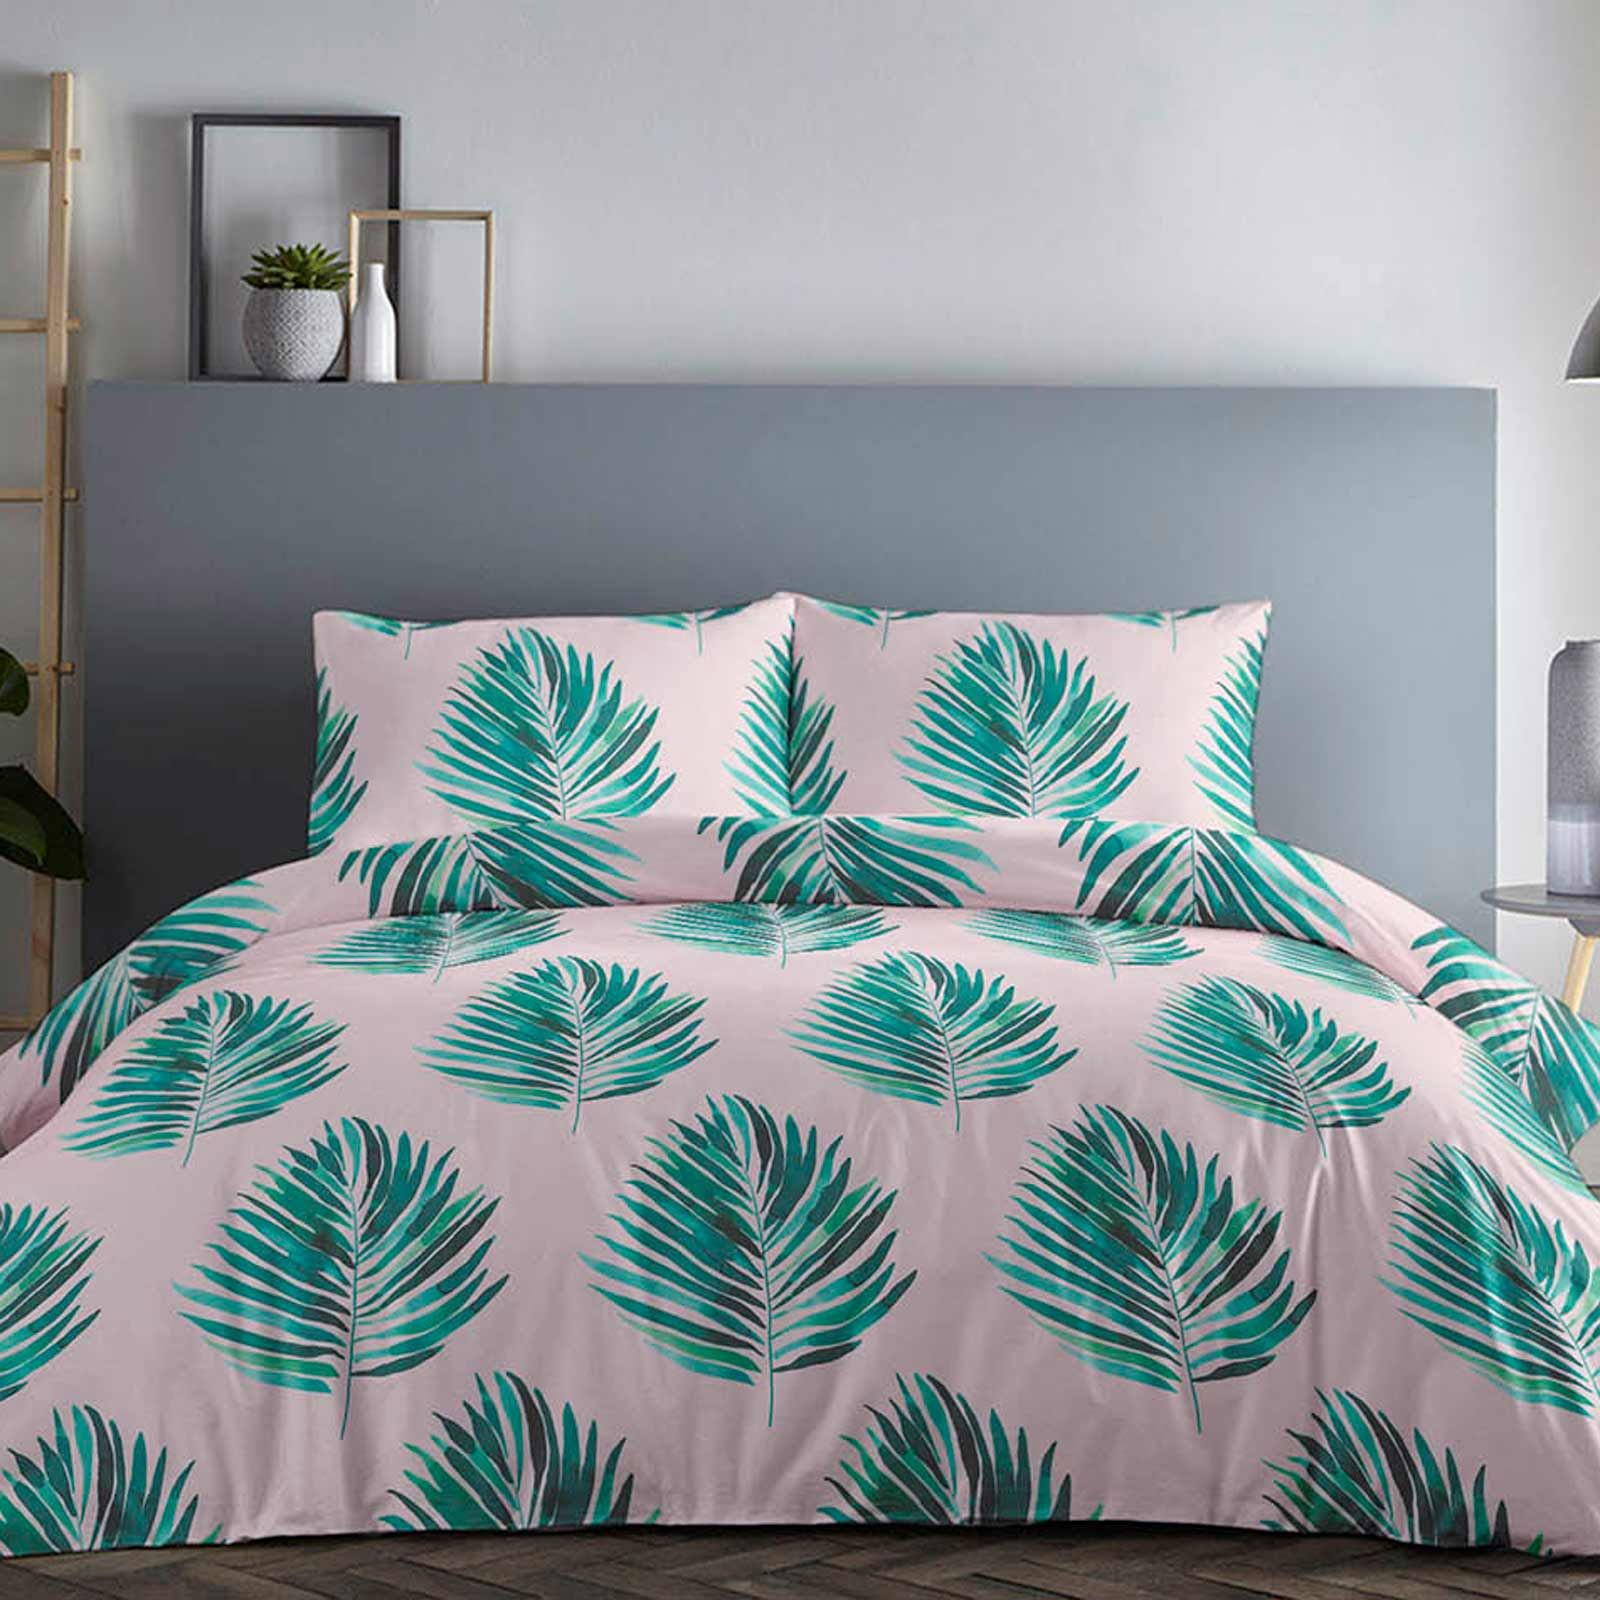 Pink Duvet Covers Blush Tropical Palms Leaves Green Quilt Cover Bedding Sets Ebay Scatter these polyester tropical leaves on beach party tables. details about pink duvet covers blush tropical palms leaves green quilt cover bedding sets